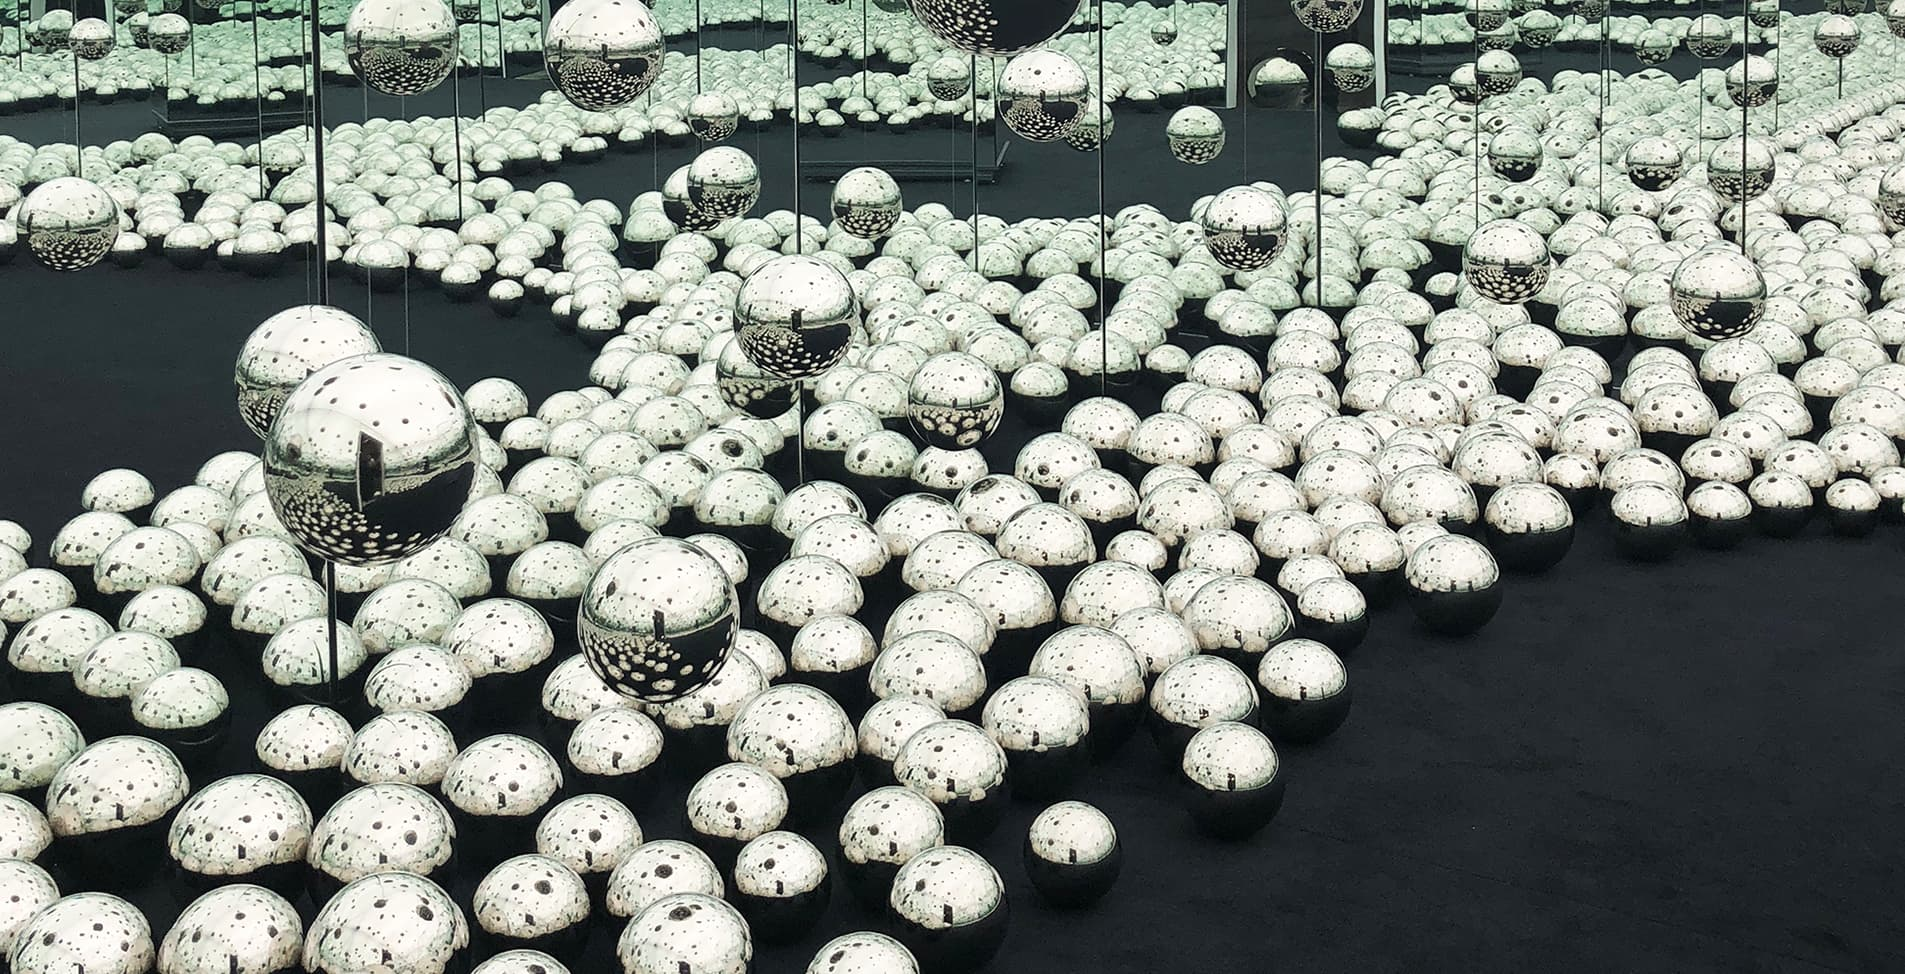 """""""Let's Survive Forever"""", 2017 - Yayoi Kusama at WNDR Museum Chicago"""